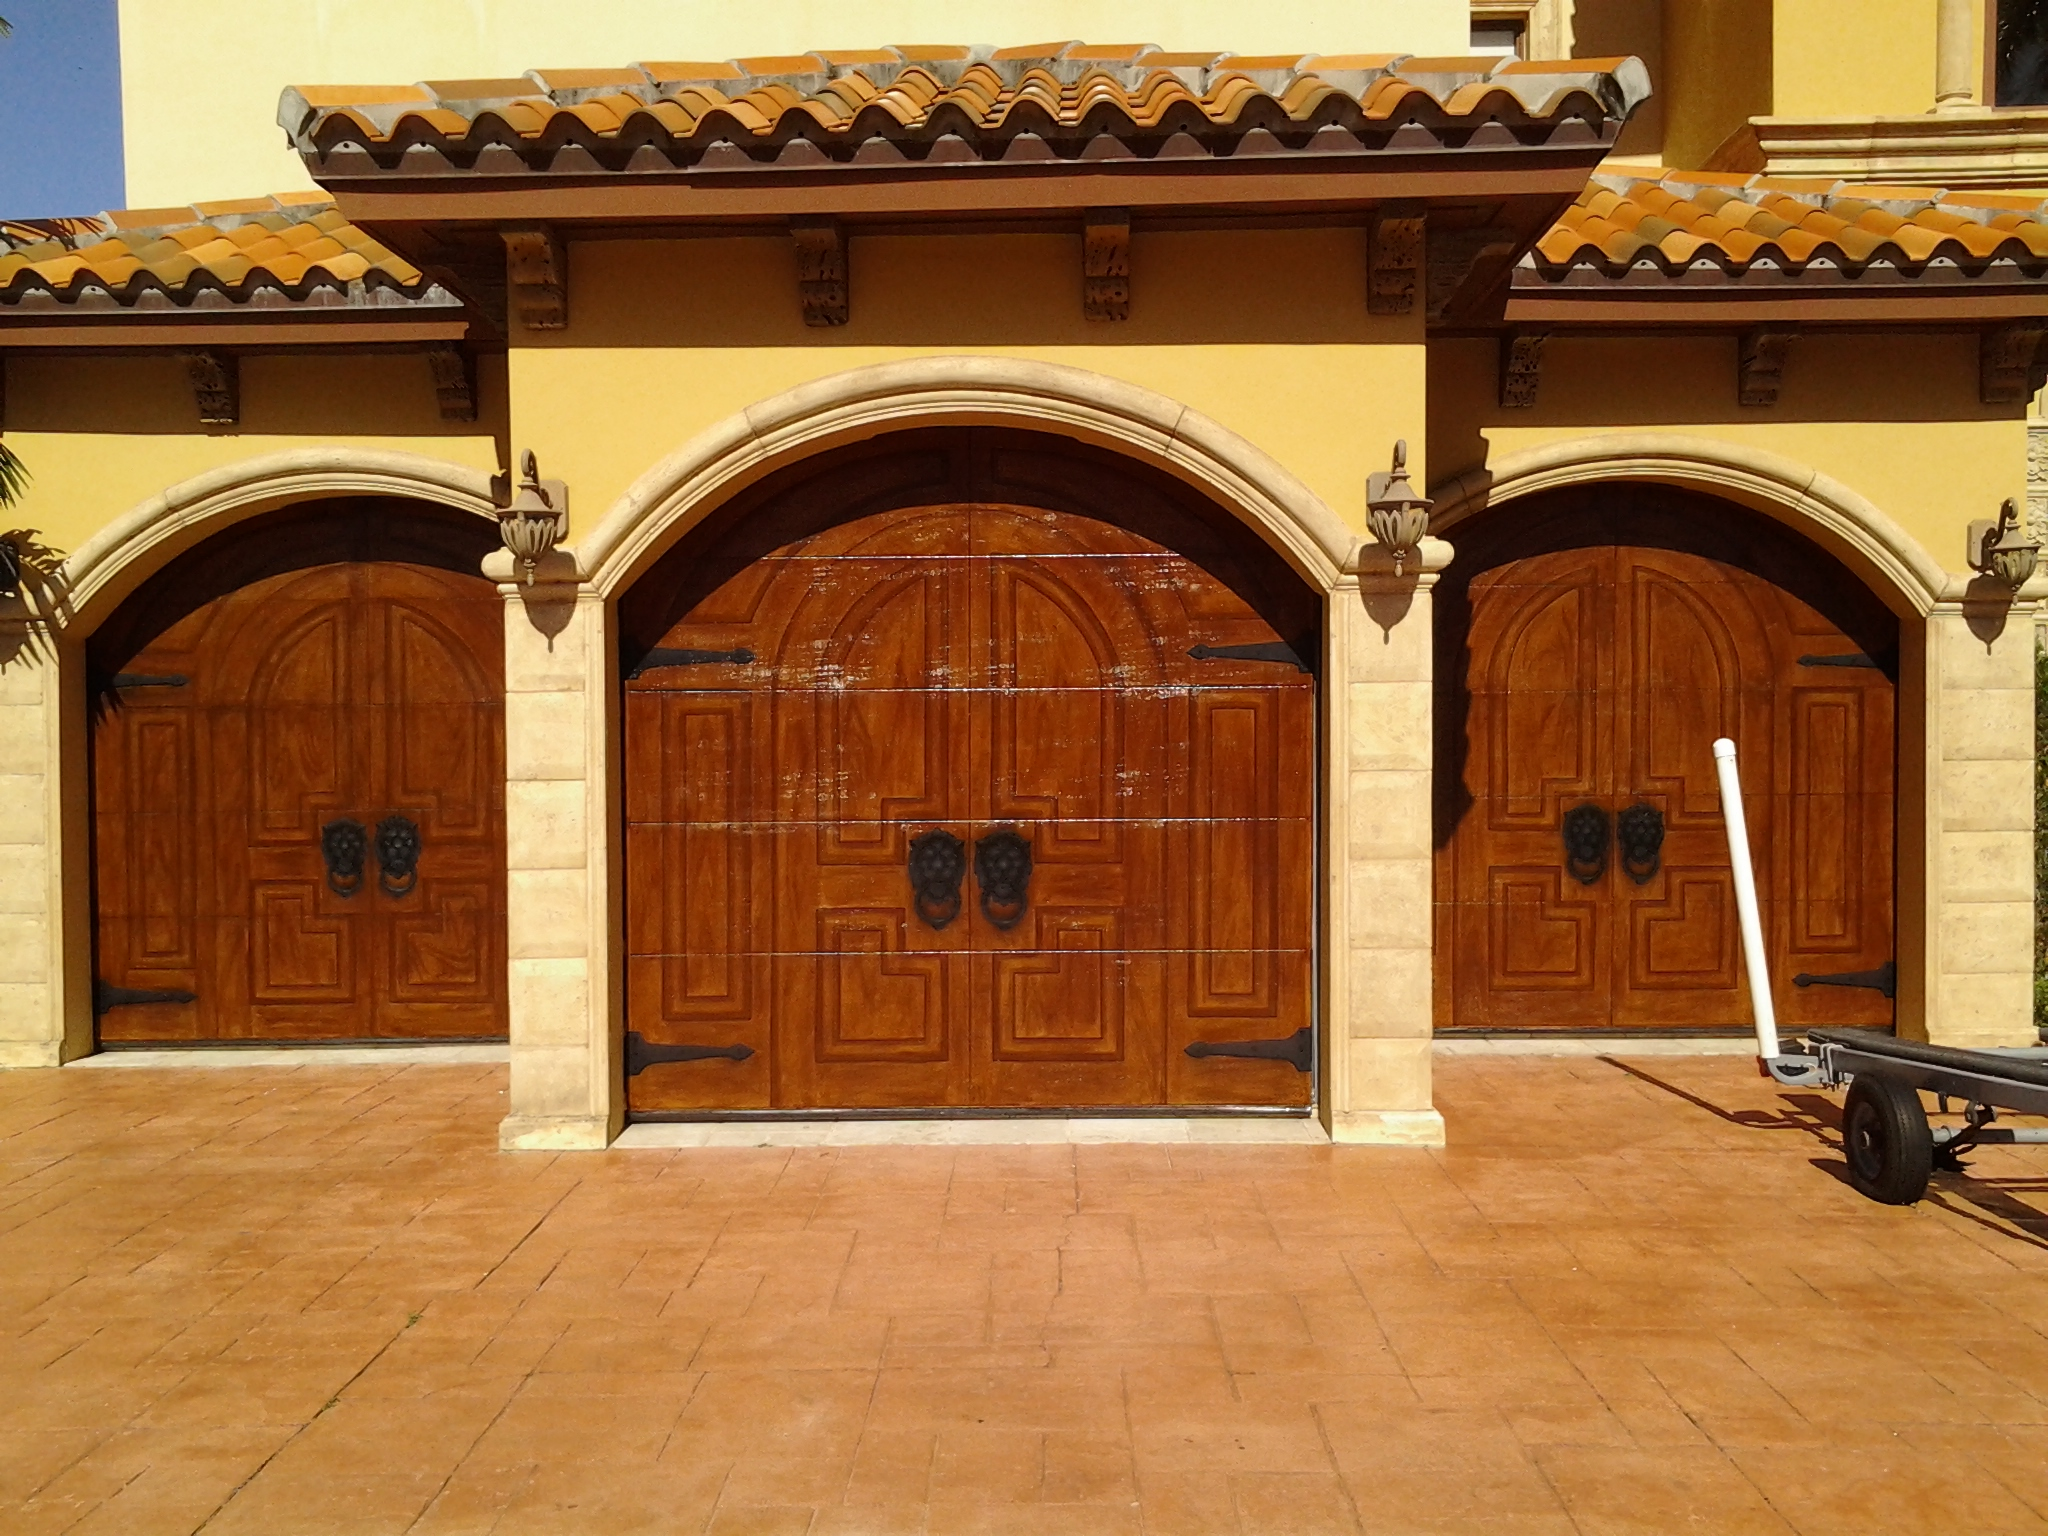 Garage Doors Designs moving porch hydraulic door Fancinating Garage Door Costco With Solid Hard Wood Material Plus Good Door Panel Combined With Tile